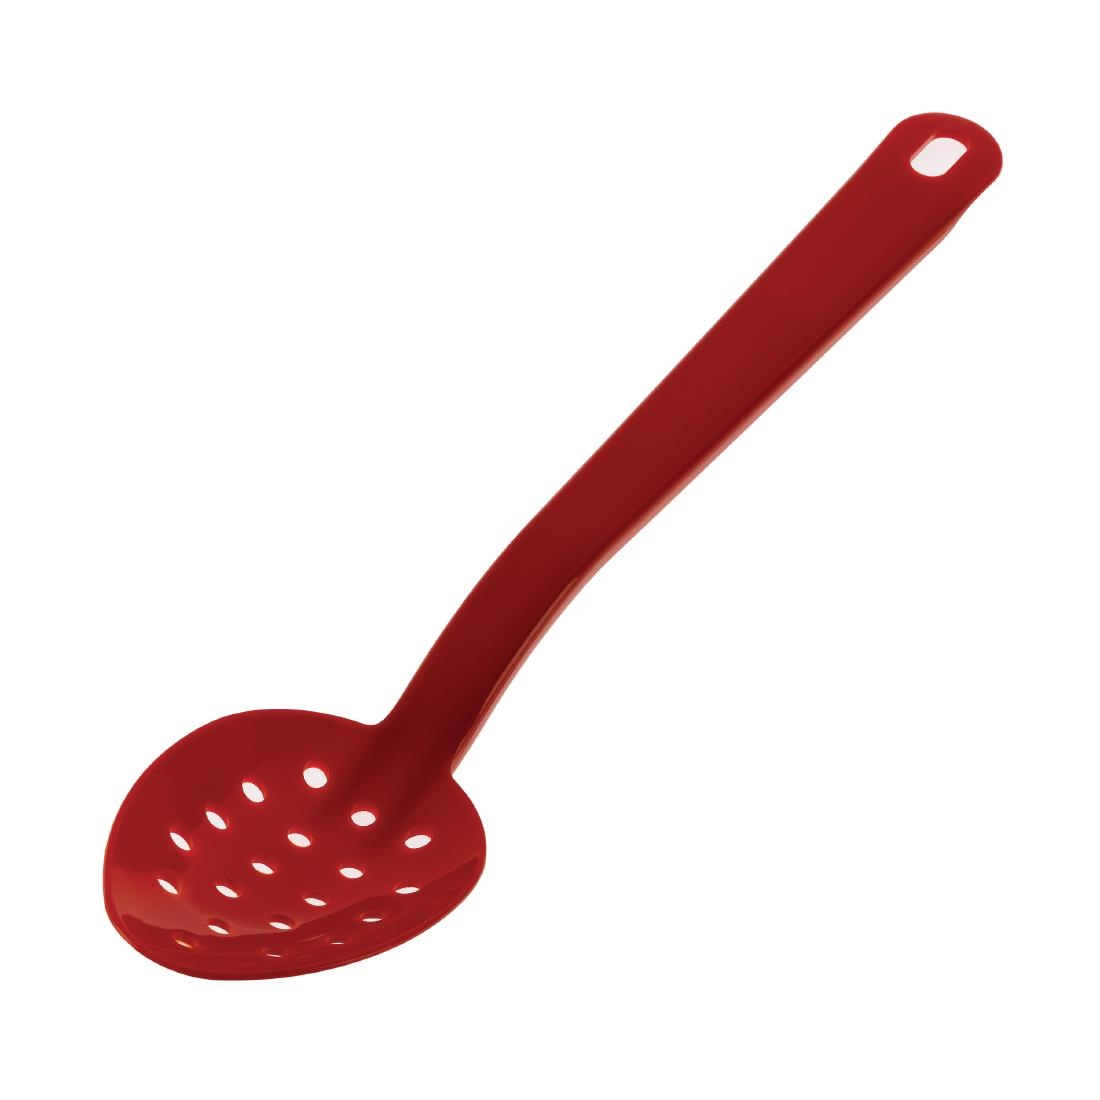 Image of Matfer Bourgeat Exoglass Perforated Serving Spoon Red 13